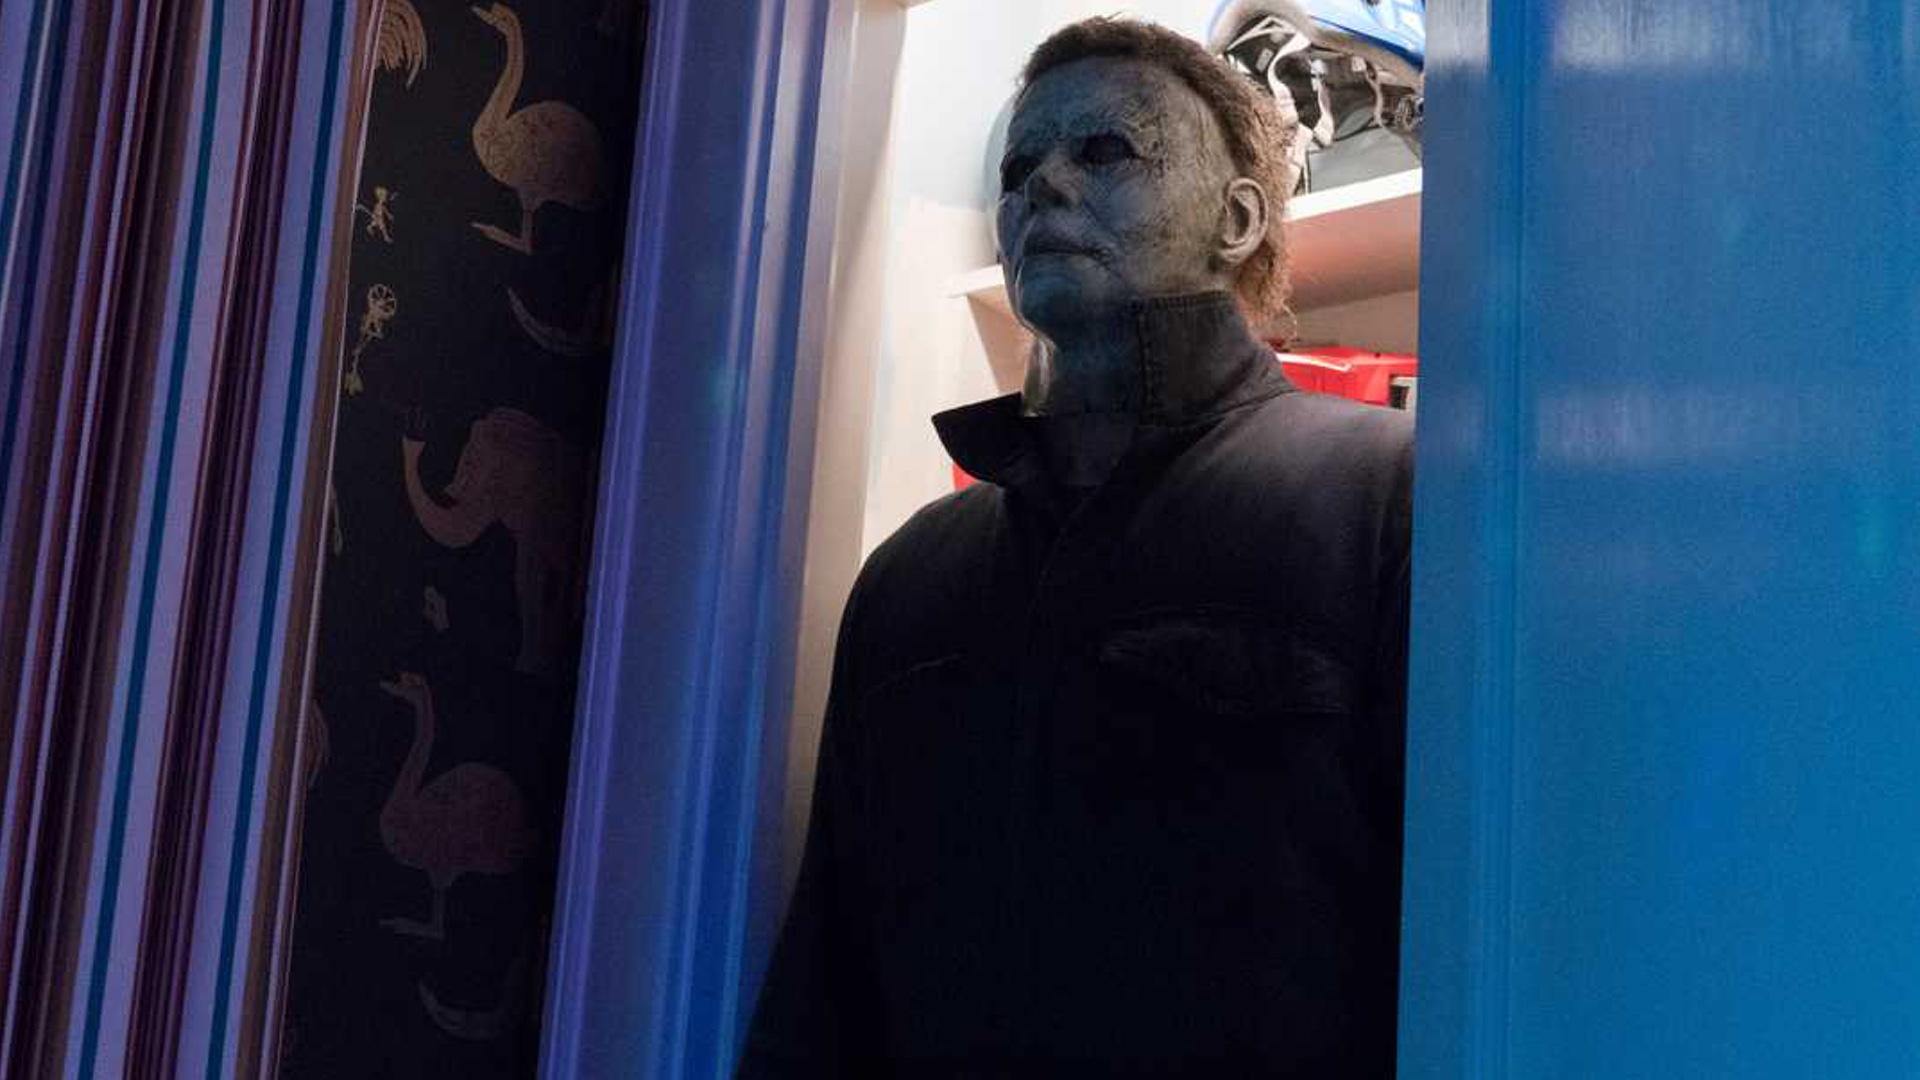 michael myers is back in action in photos from the new halloween